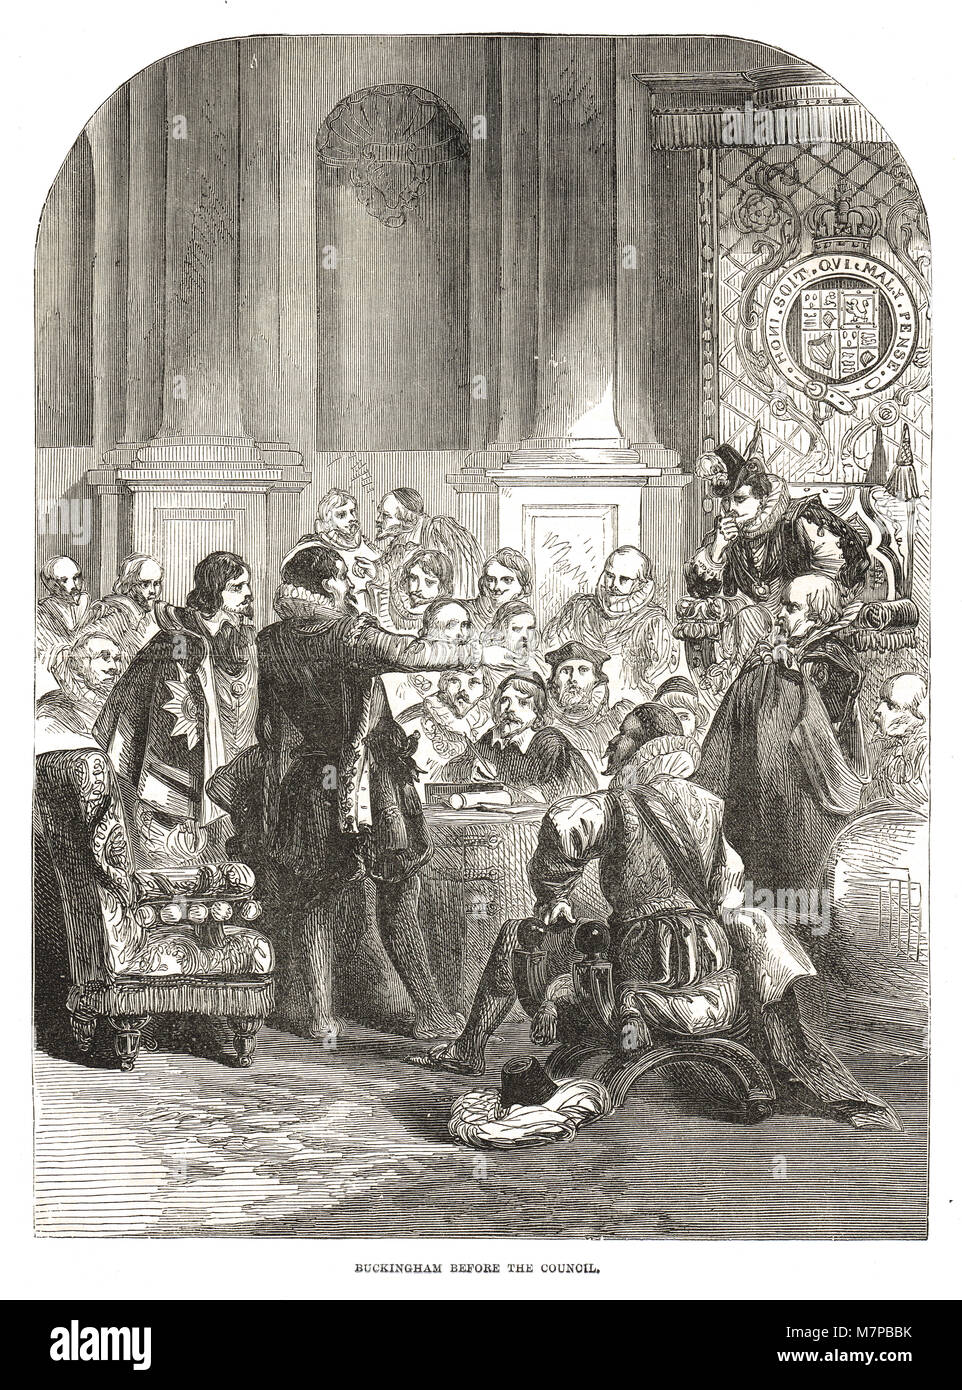 George Villiers, 1st Duke of Buckingham, before the council, 17th century - Stock Image